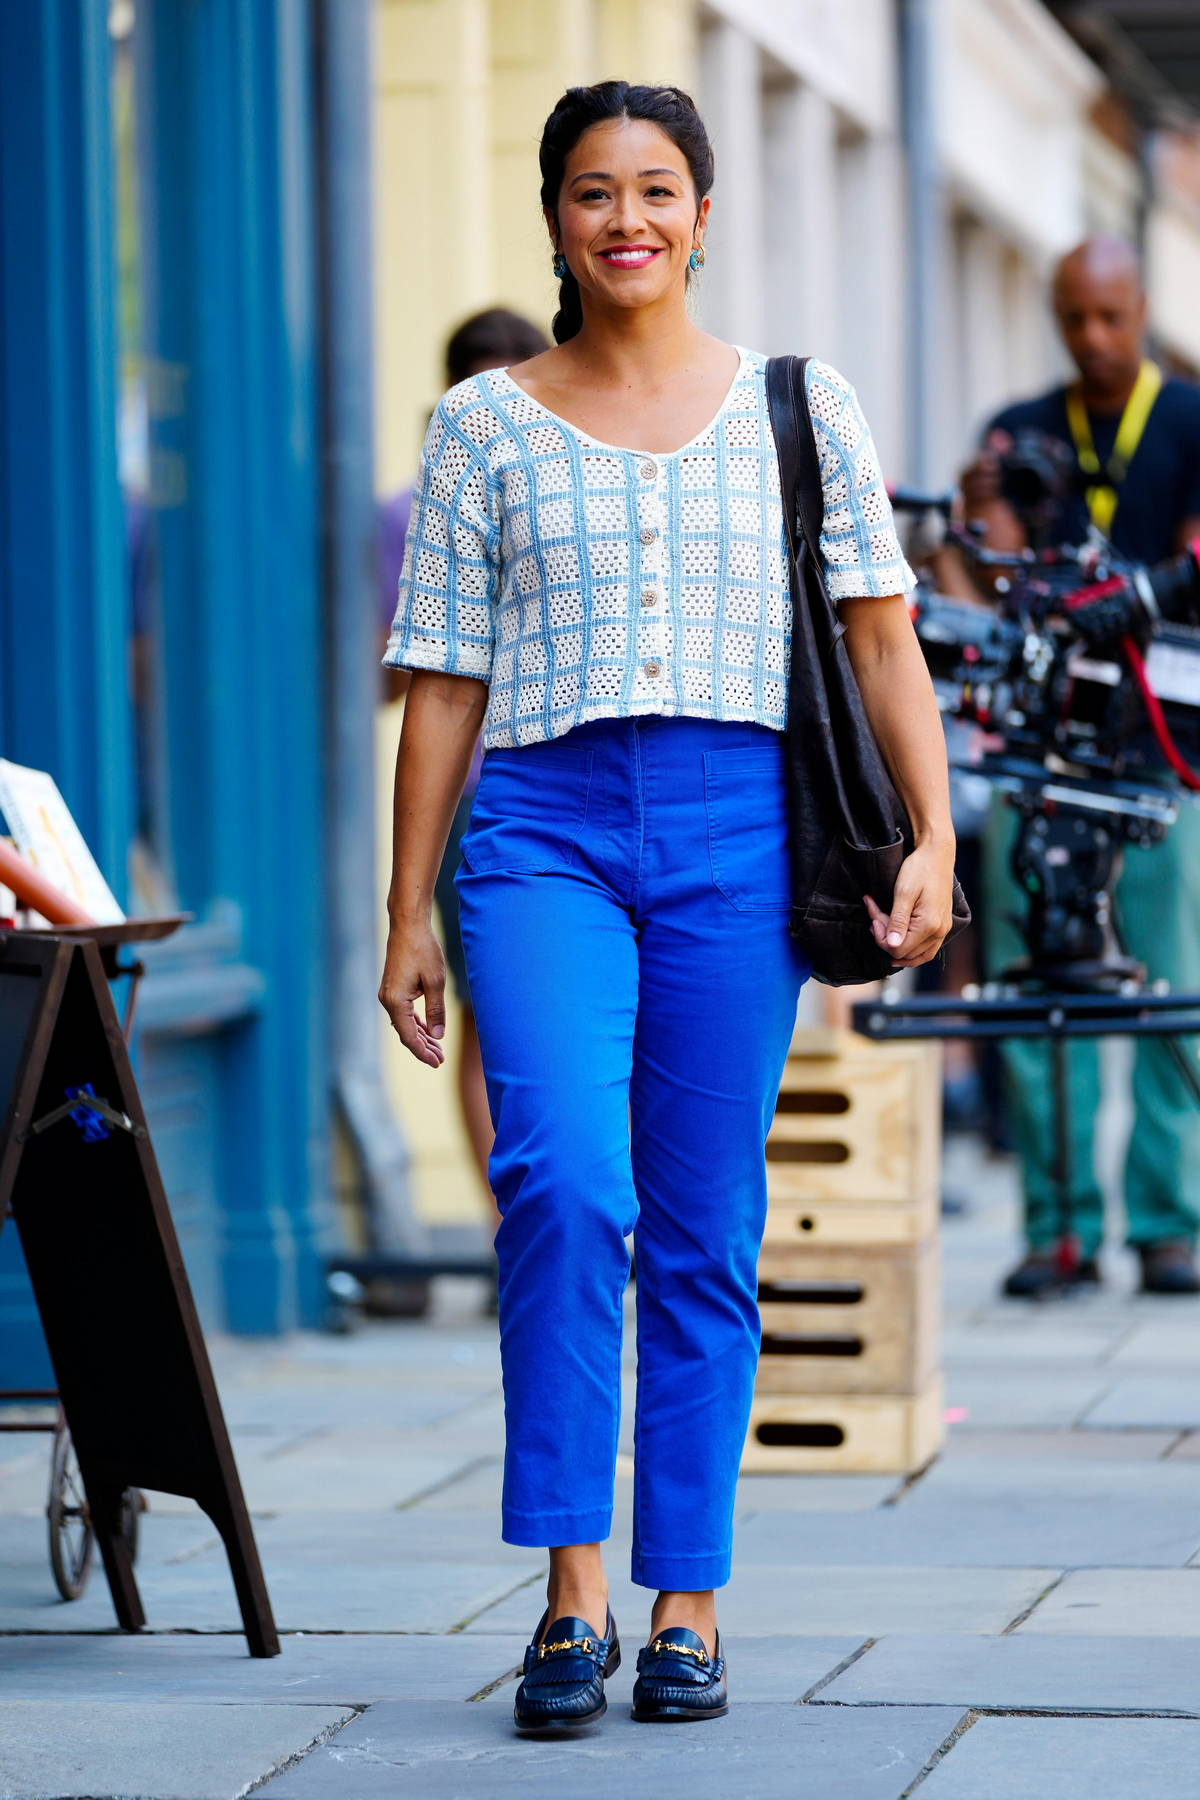 Gina Rodriguez is all smiles while spotted on the set of 'Players' in New York City